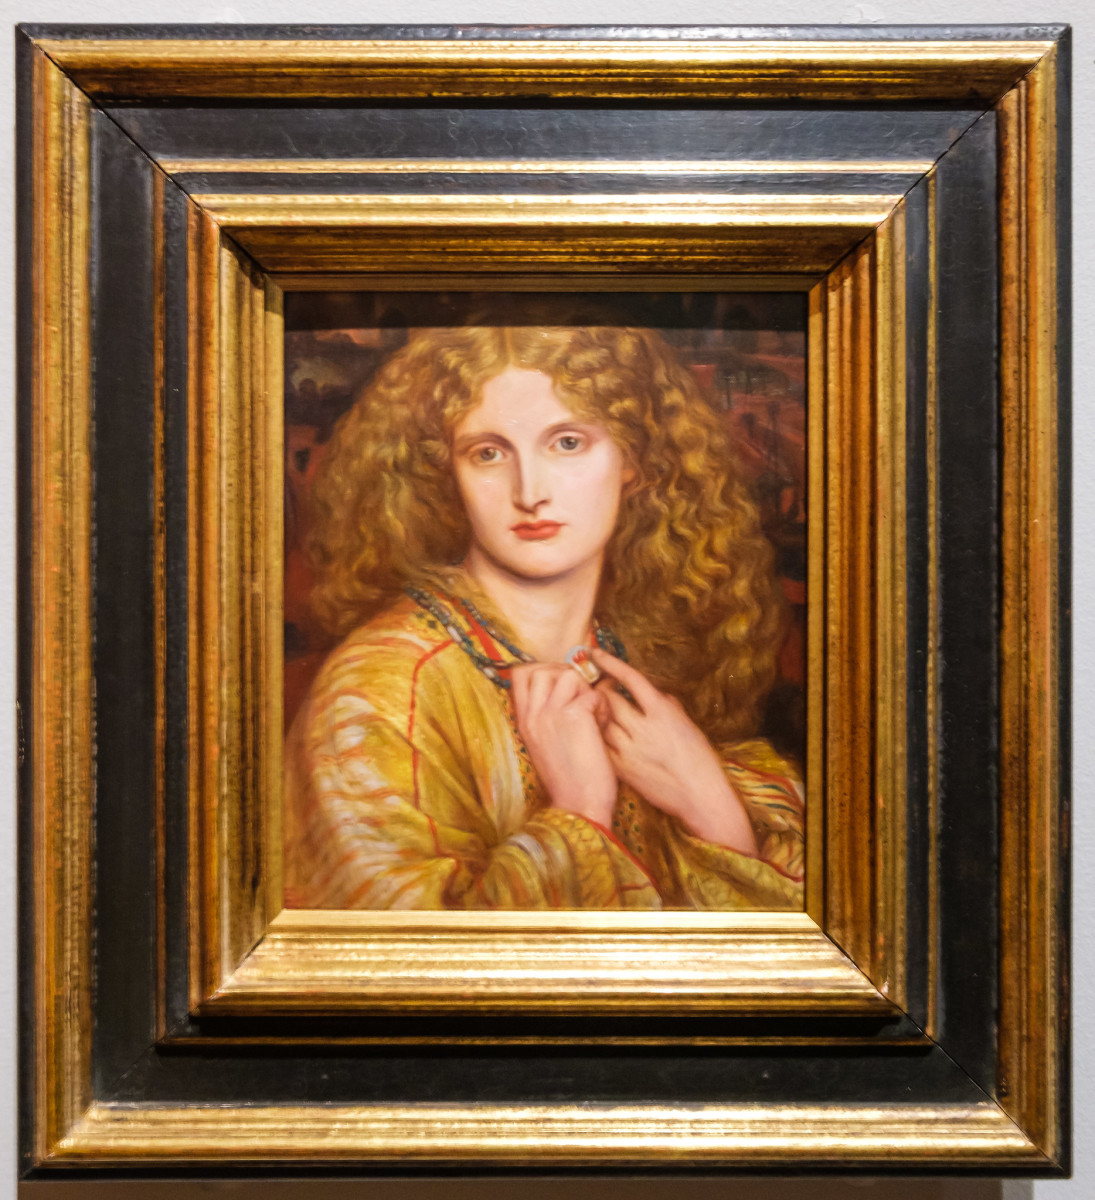 A copy of Rossetti's 'Helen of Troy' modeled by Annie Miller and painted by Dante Gabriel Rossetti, Resides at London's National Portrait Gallery.